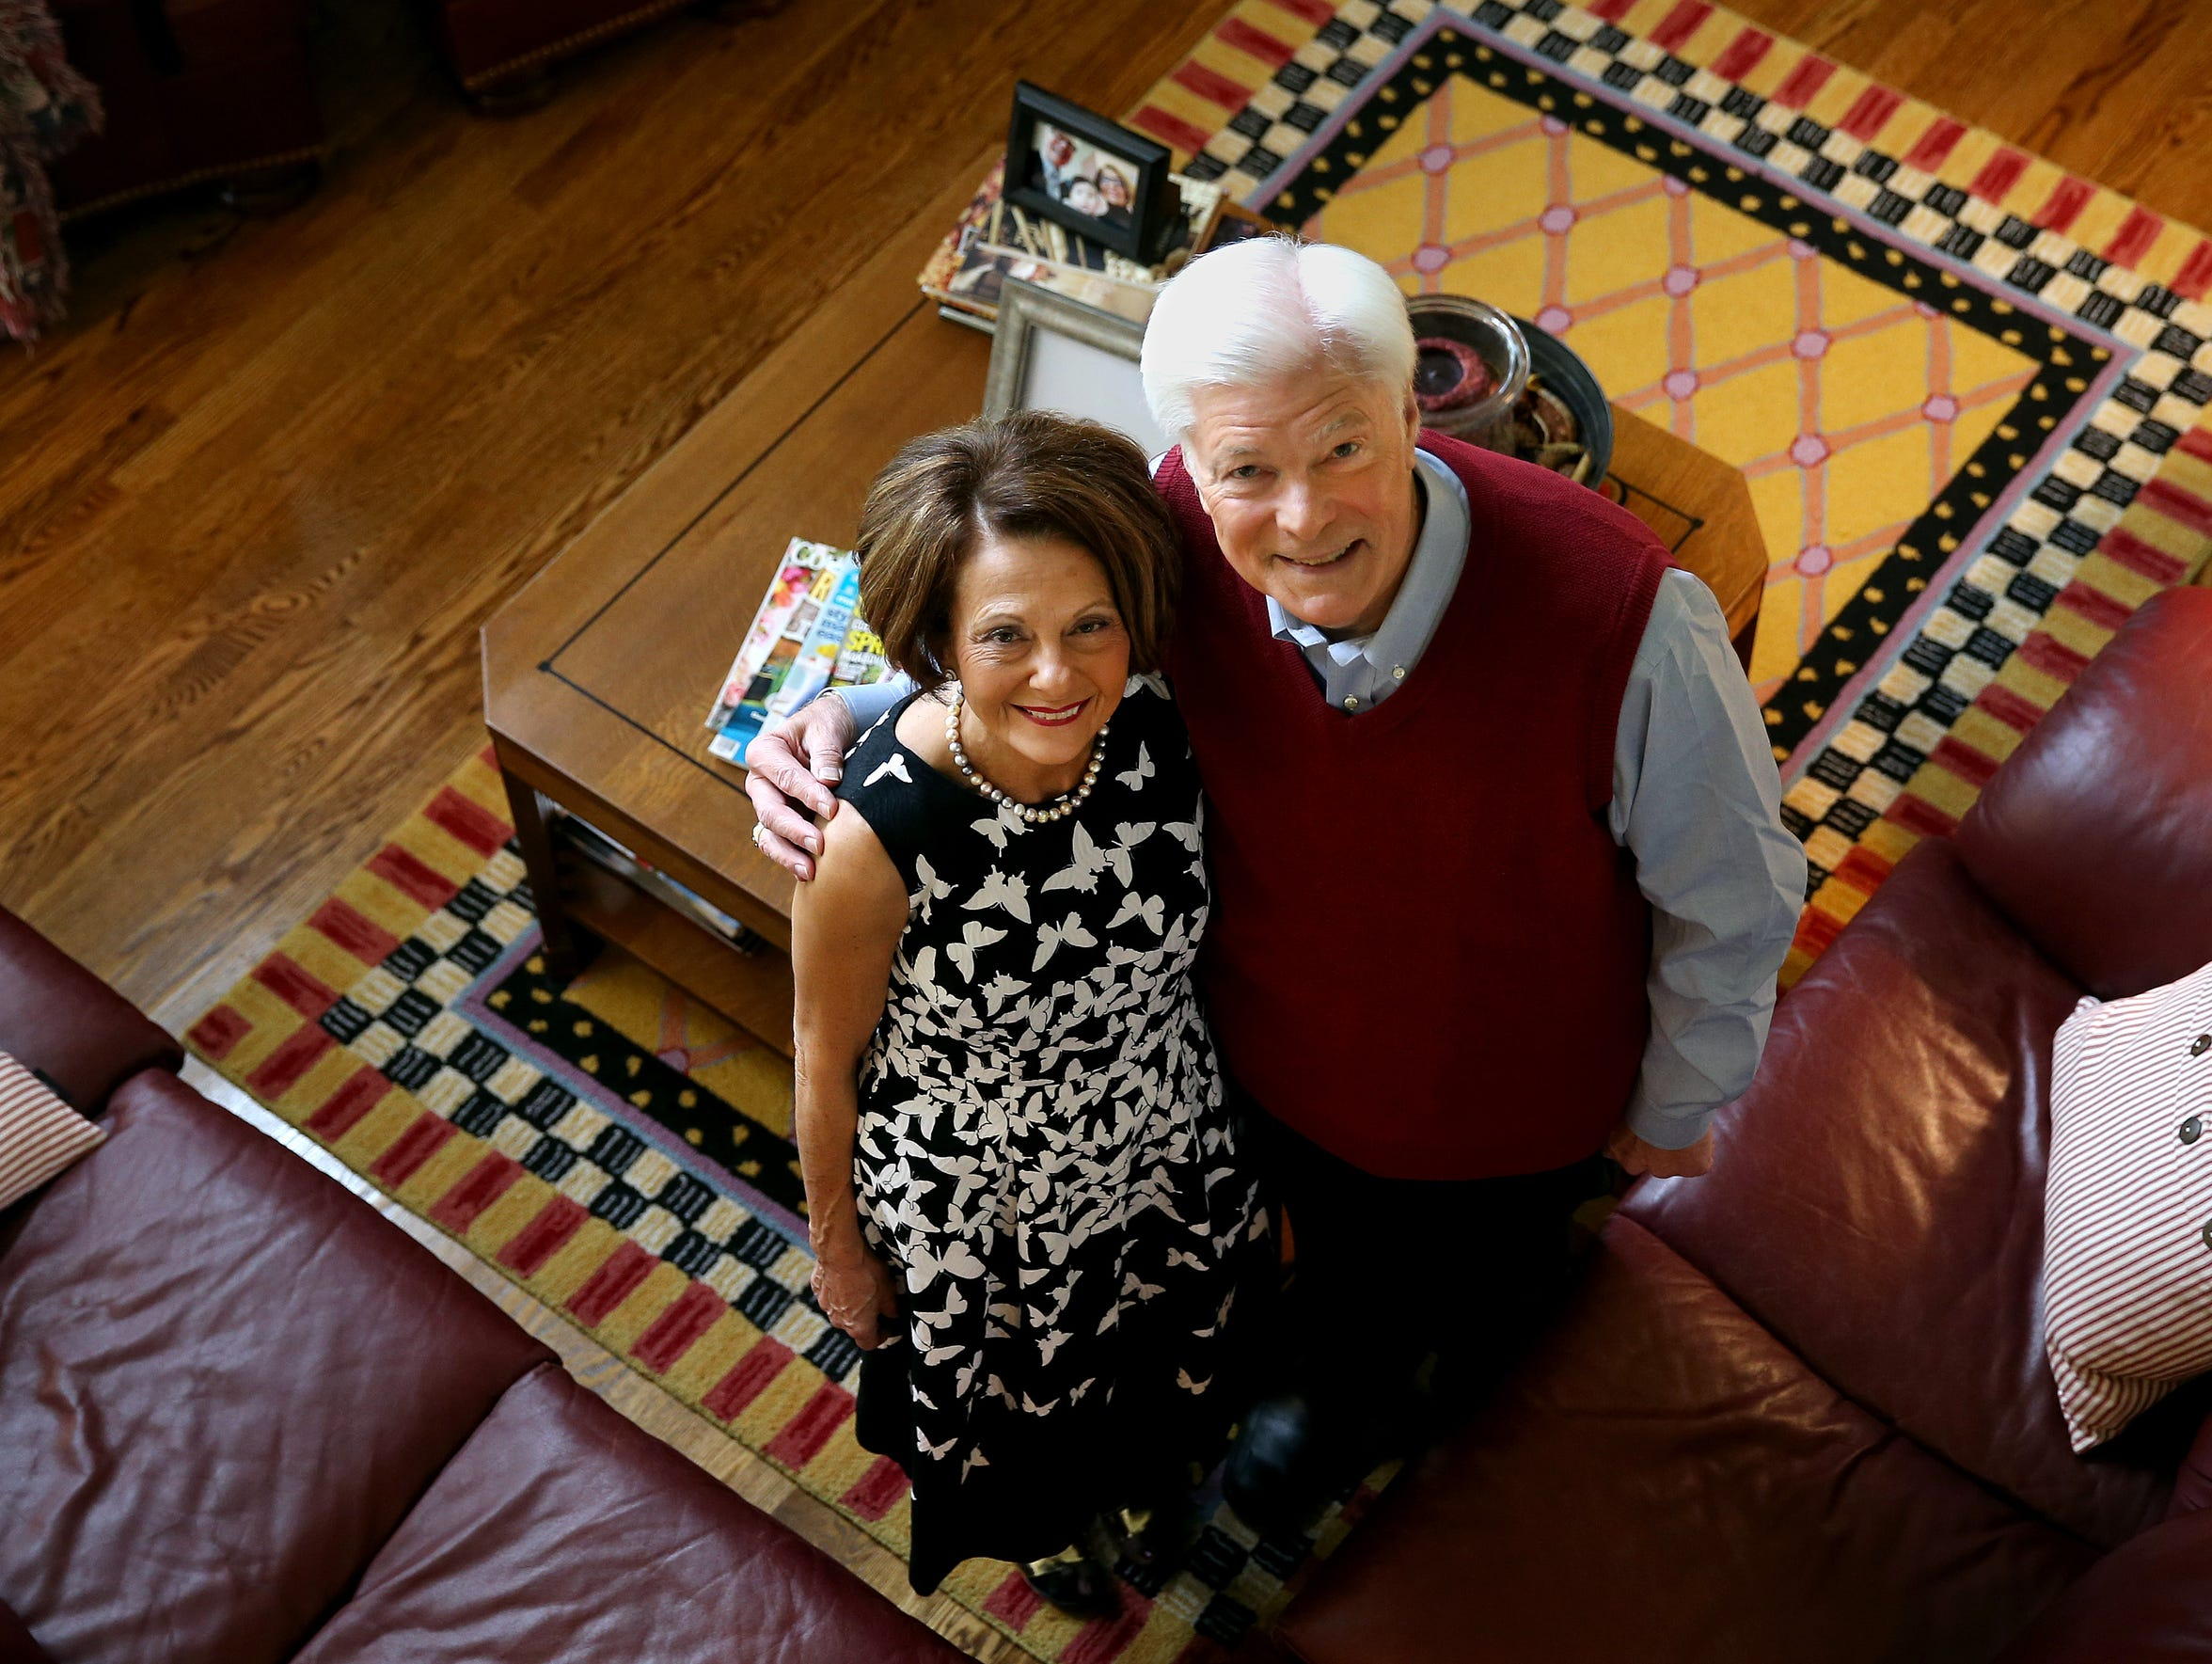 Mary and Don Alhart were married in 1970. They met